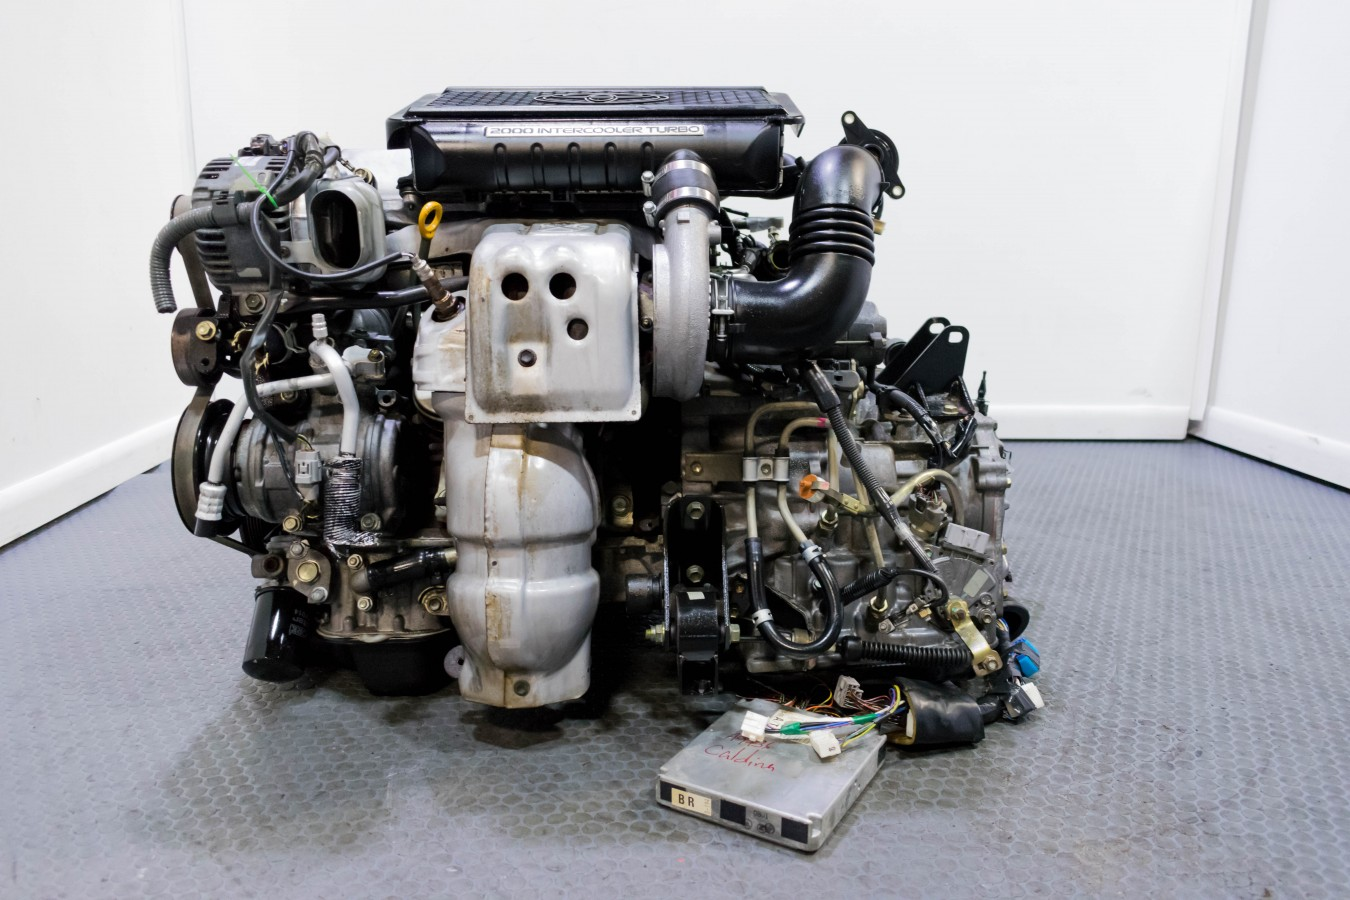 JDM Used 3S-GTE Gen 4 Turbocharged Toyota Caldina Engine for Celica MR2  Corolla swap etc